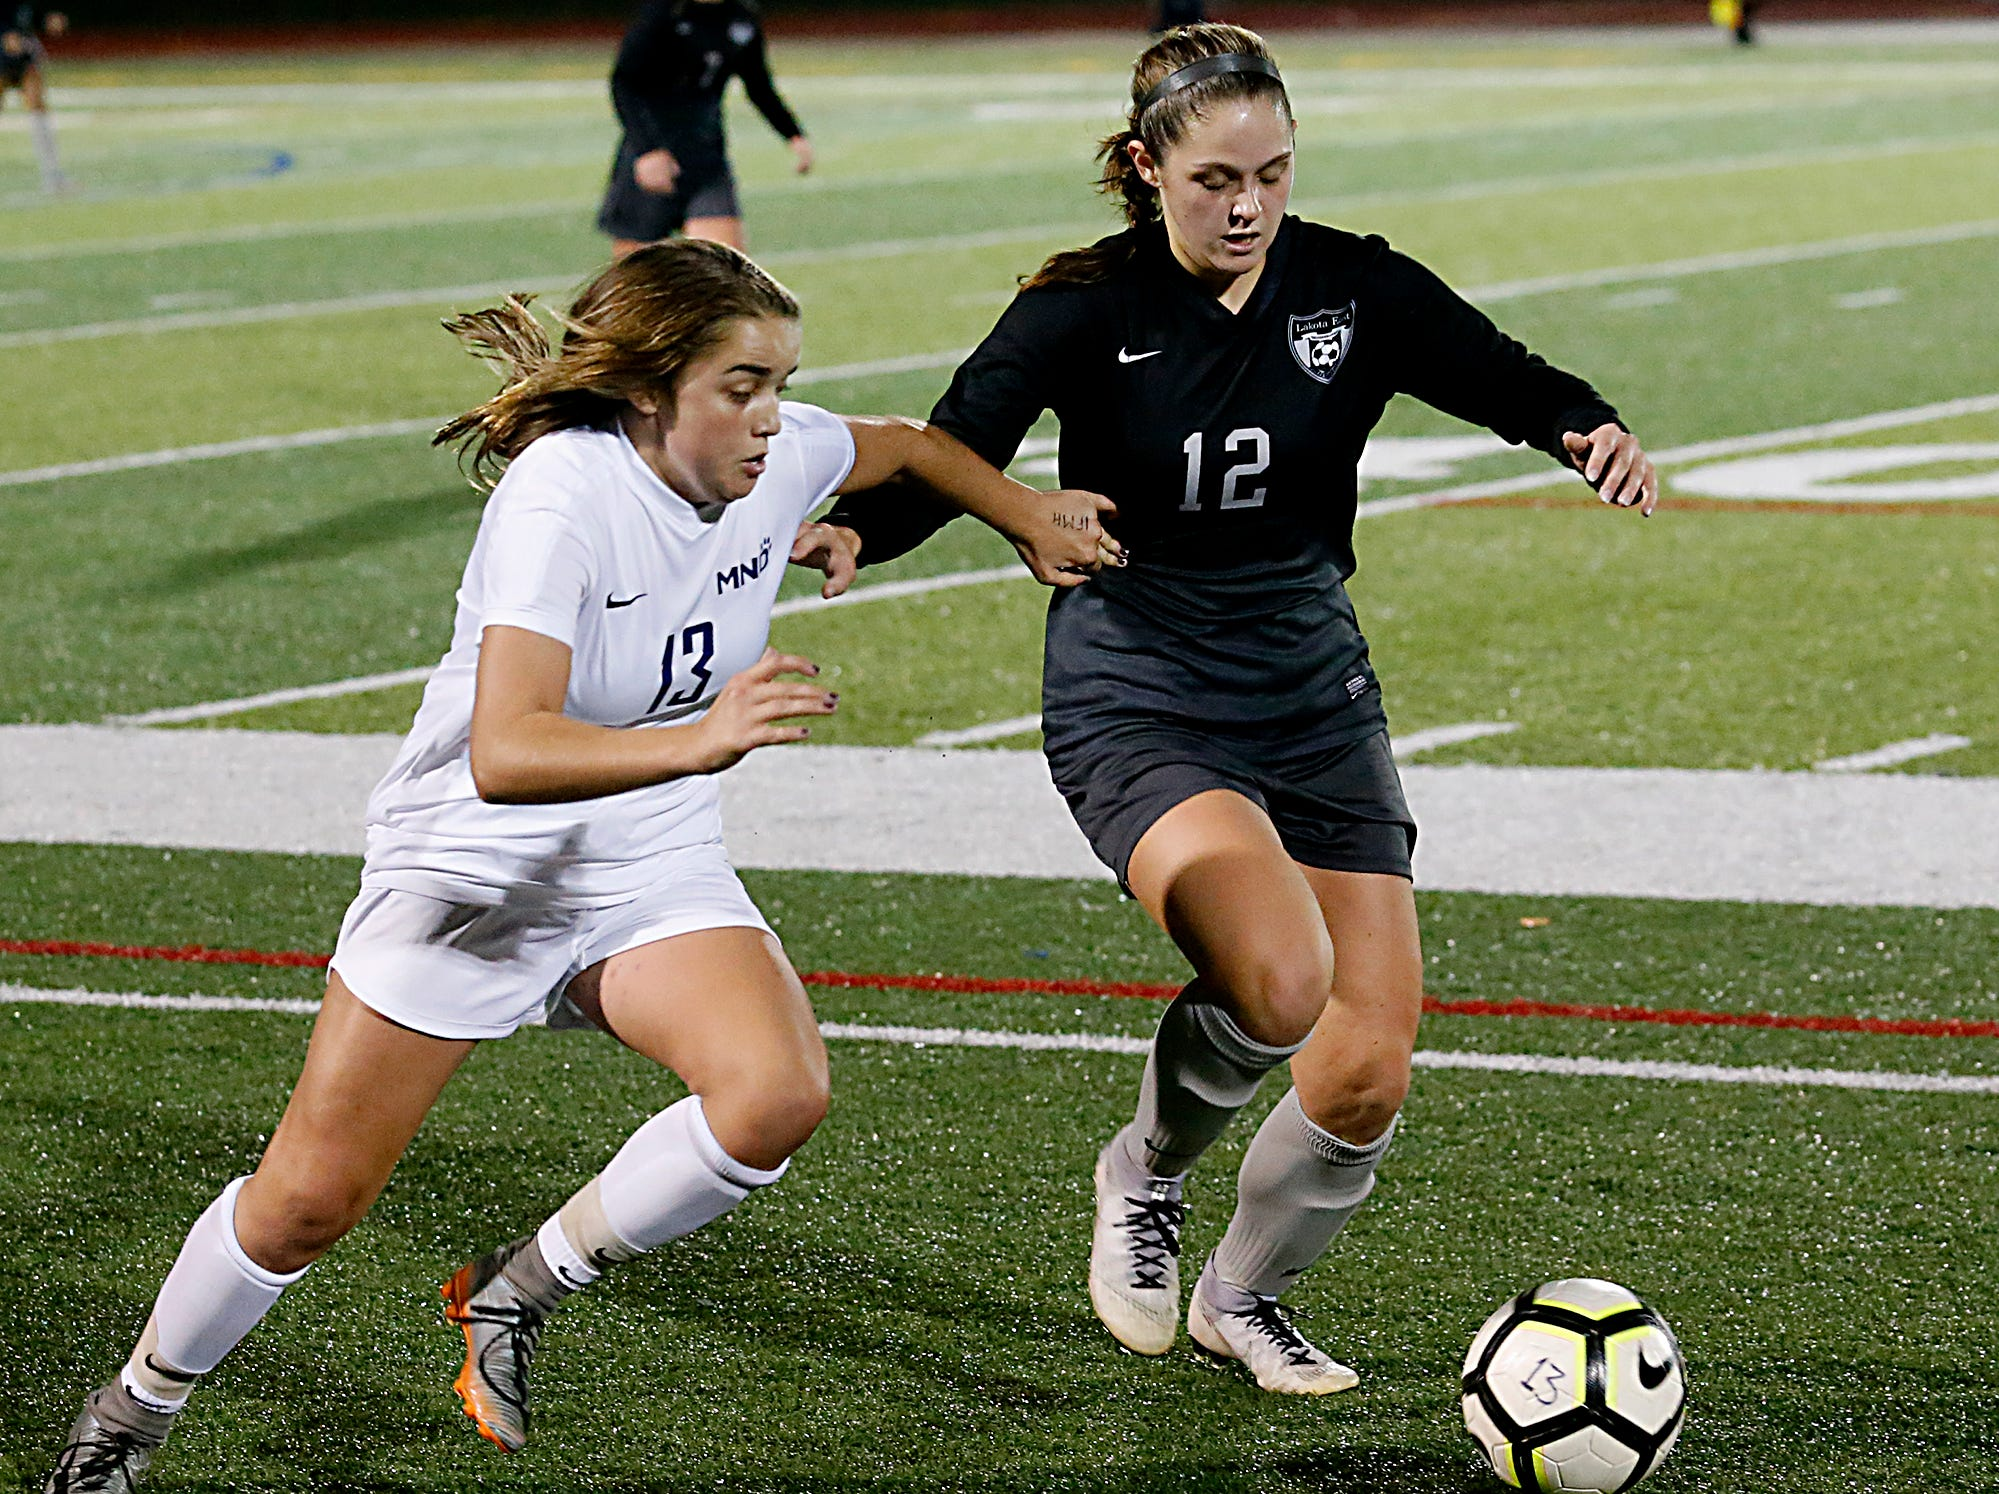 Mount Notre Dame midfielder Emma Frey and Lakota East defender Ashley Whitehead chase the ball during their Division I Southwest district final soccer game at Walnut Hills in Cincinnati Saturday, Oct. 27, 2018.